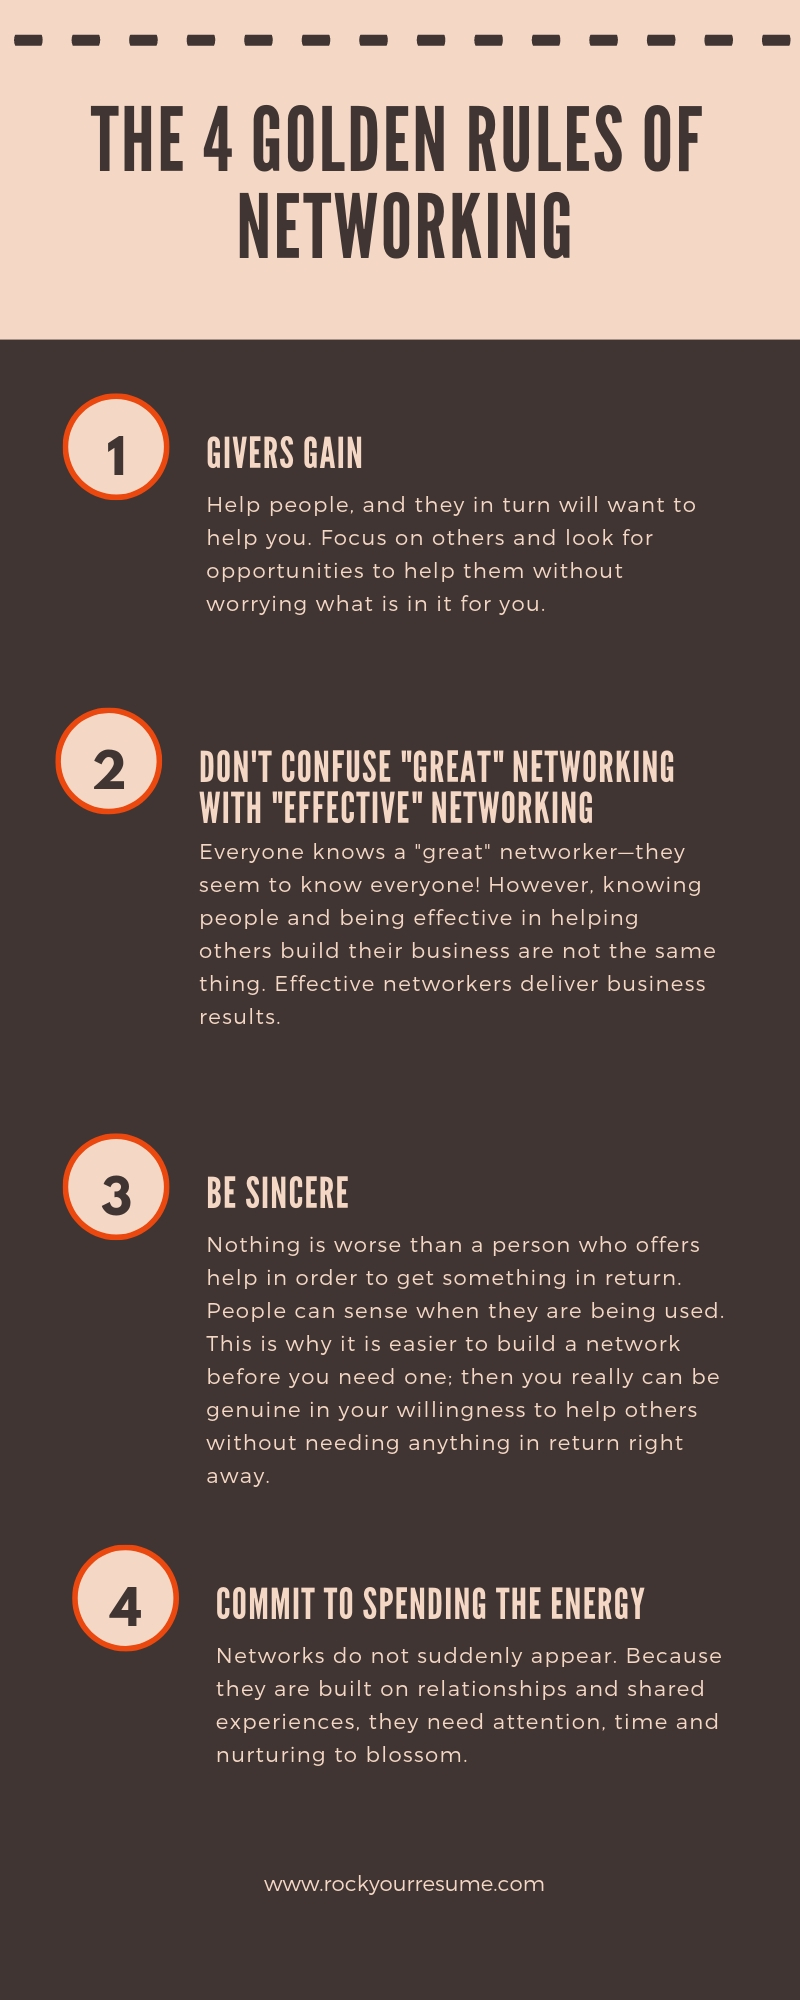 the 4 golden rules of networking.jpg